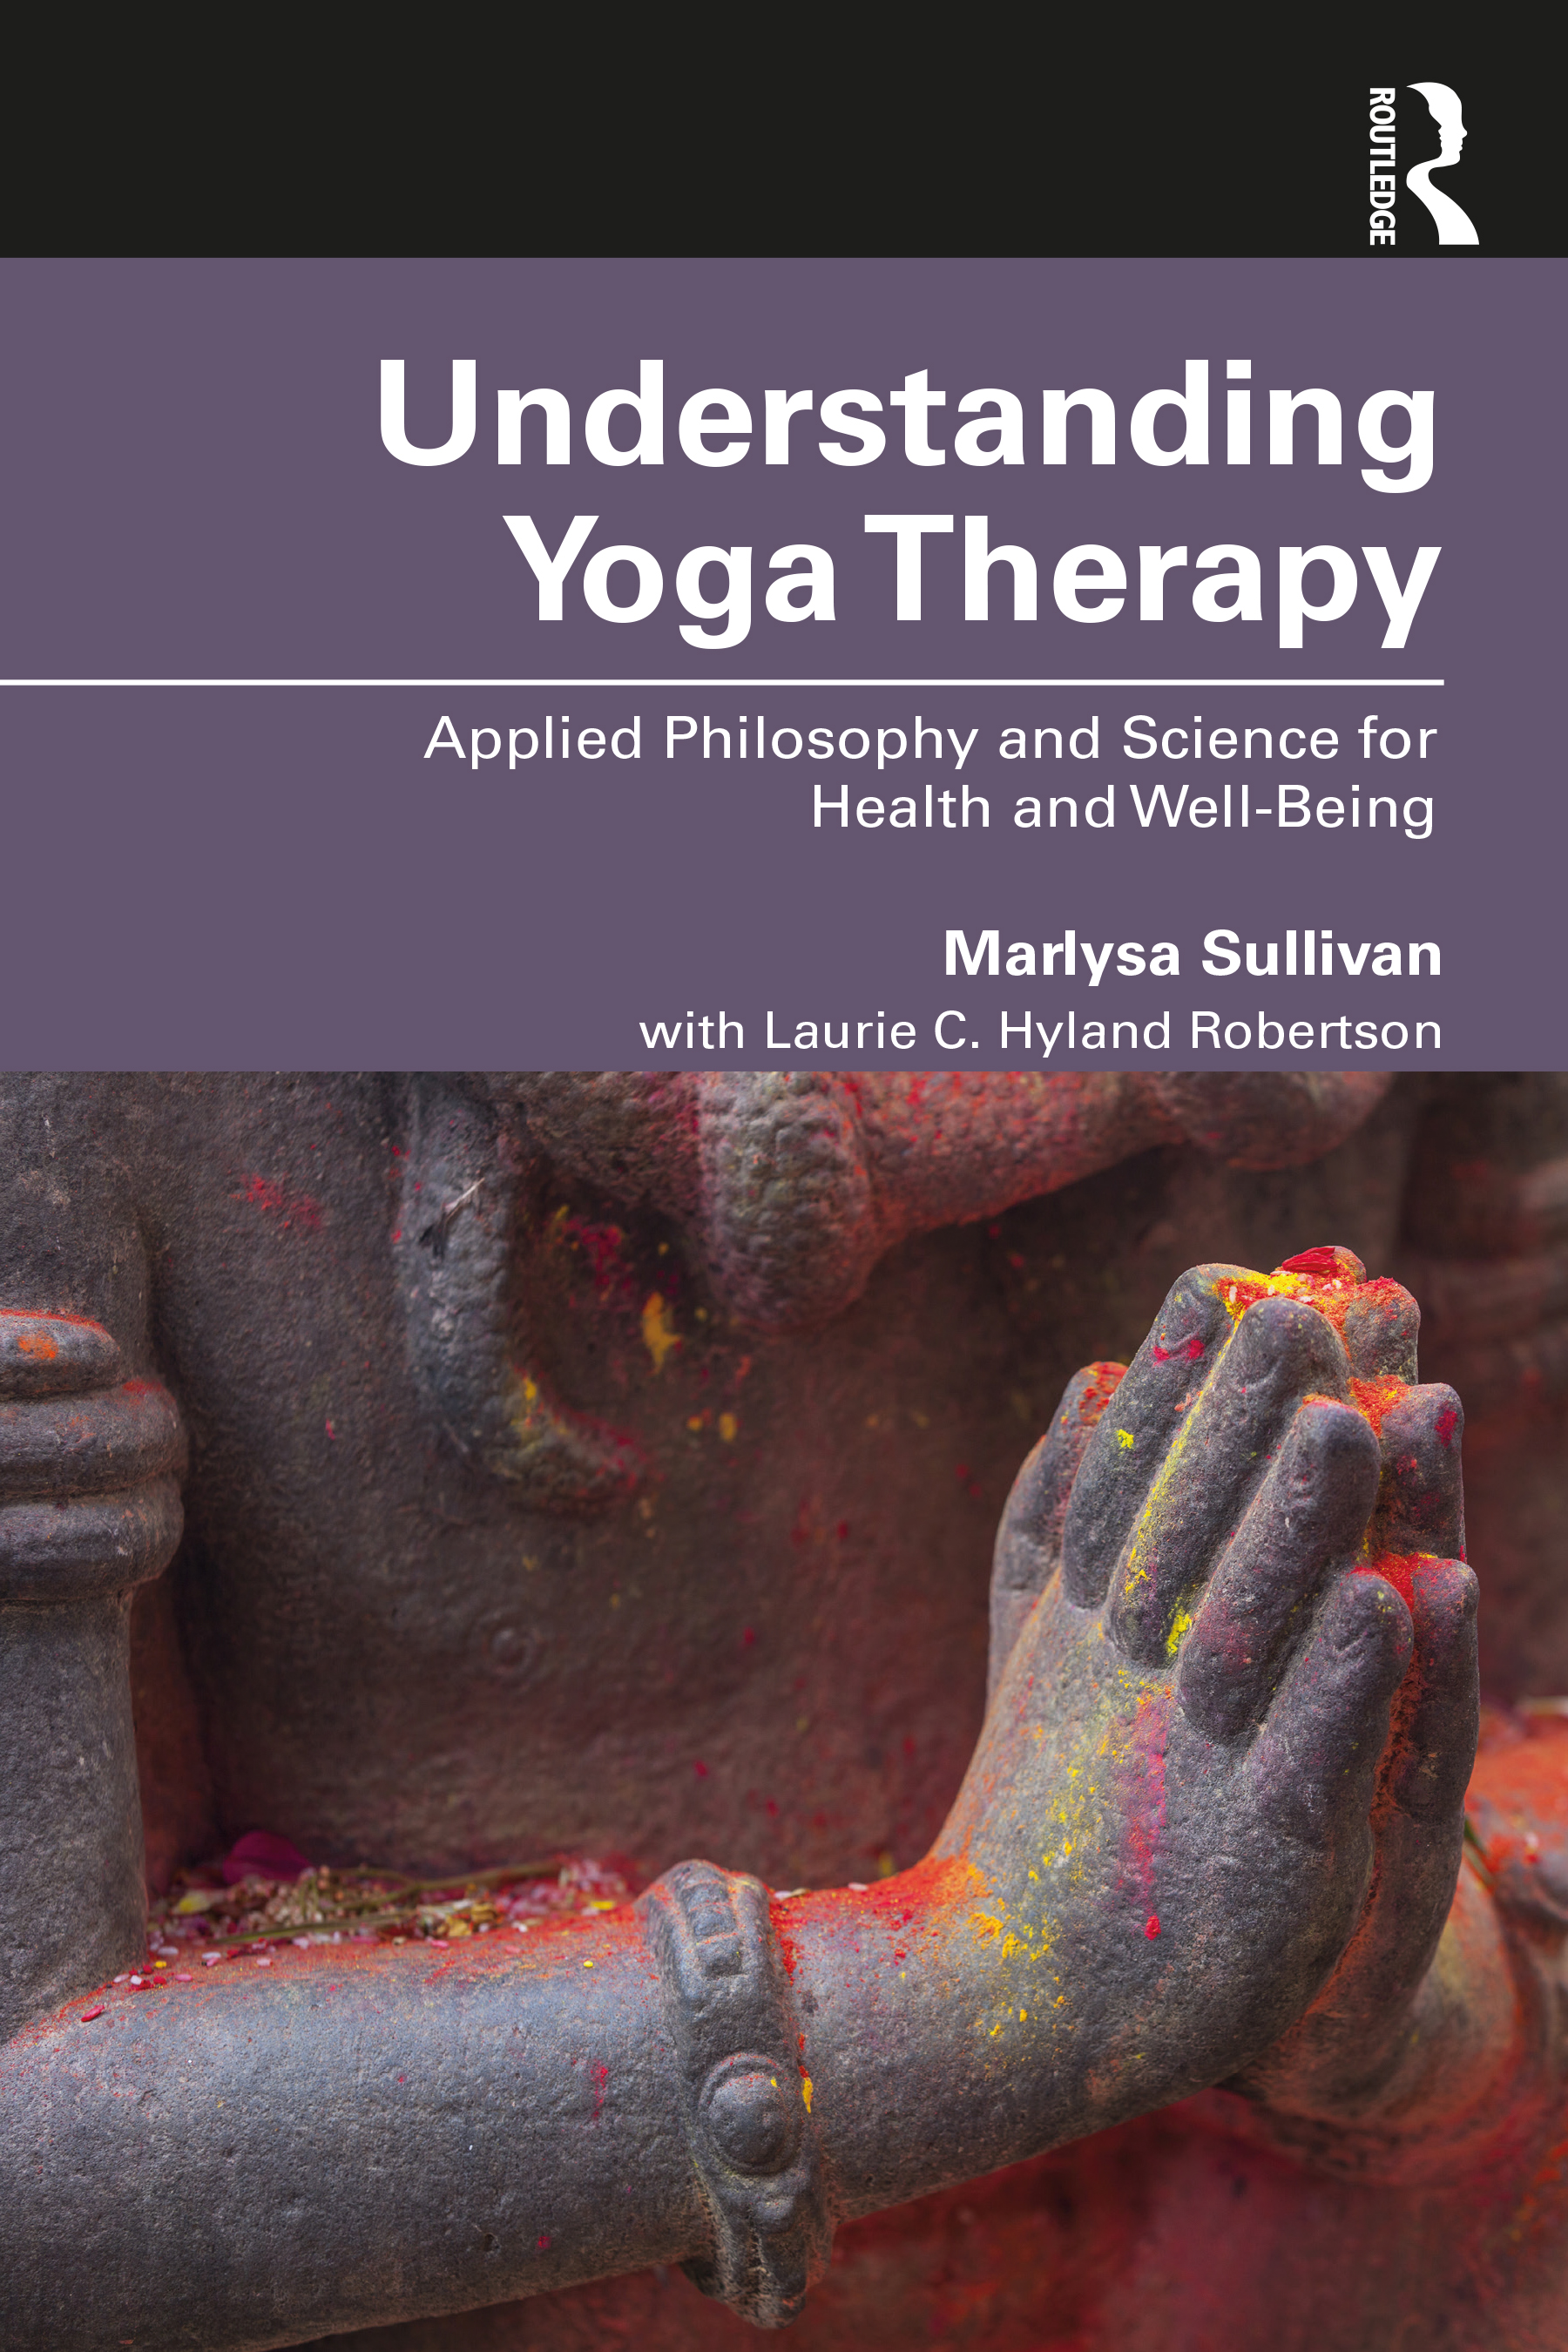 Understanding Yoga Therapy: Applied Philosophy and Science for Health and Well-Being book cover